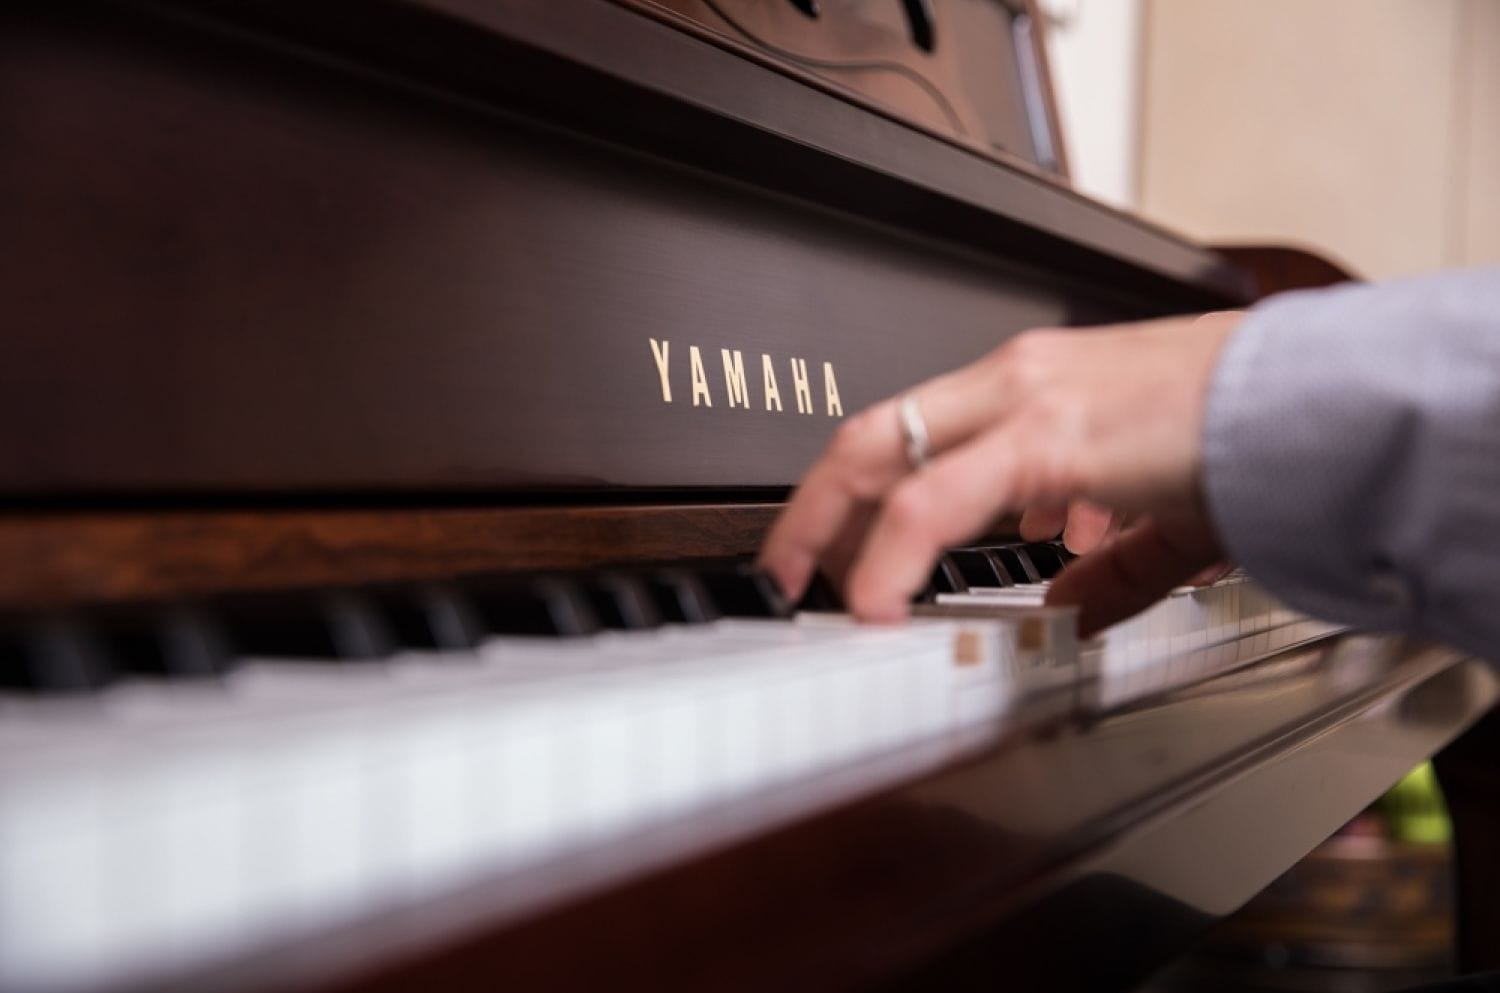 Closeup from side angle of man's hands playing piano.